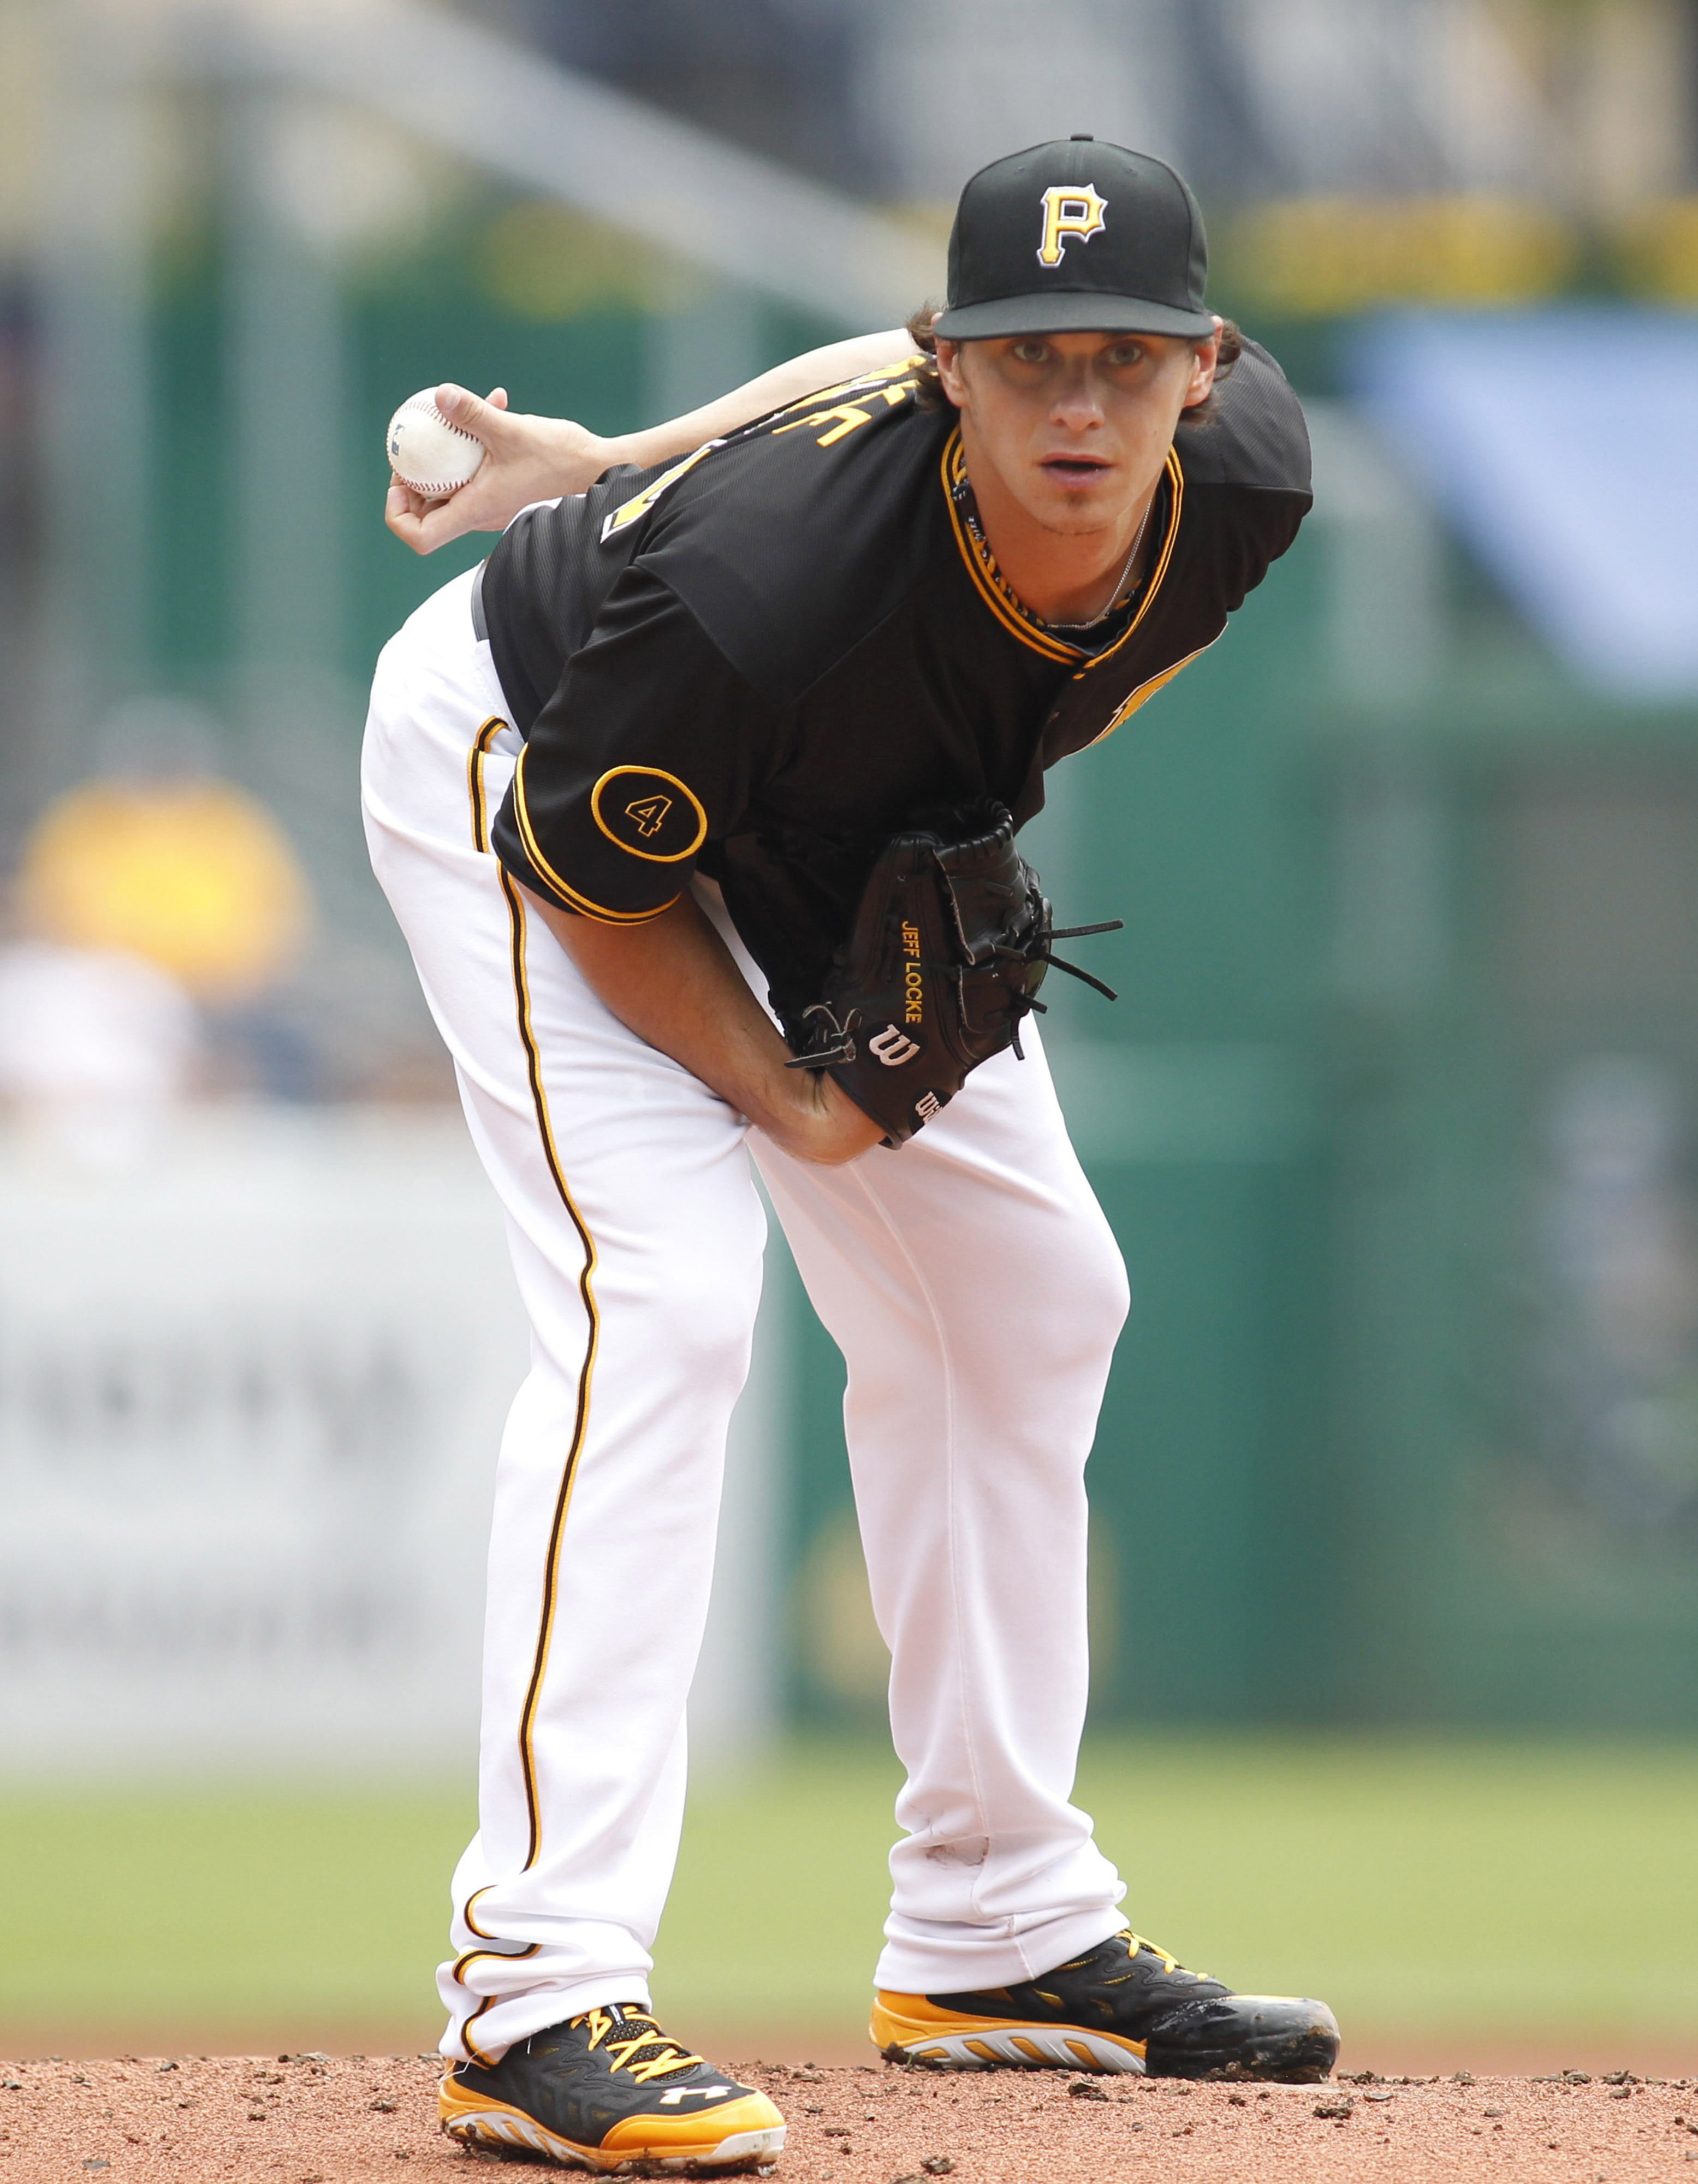 Jeff Locke taking signs from the catcher